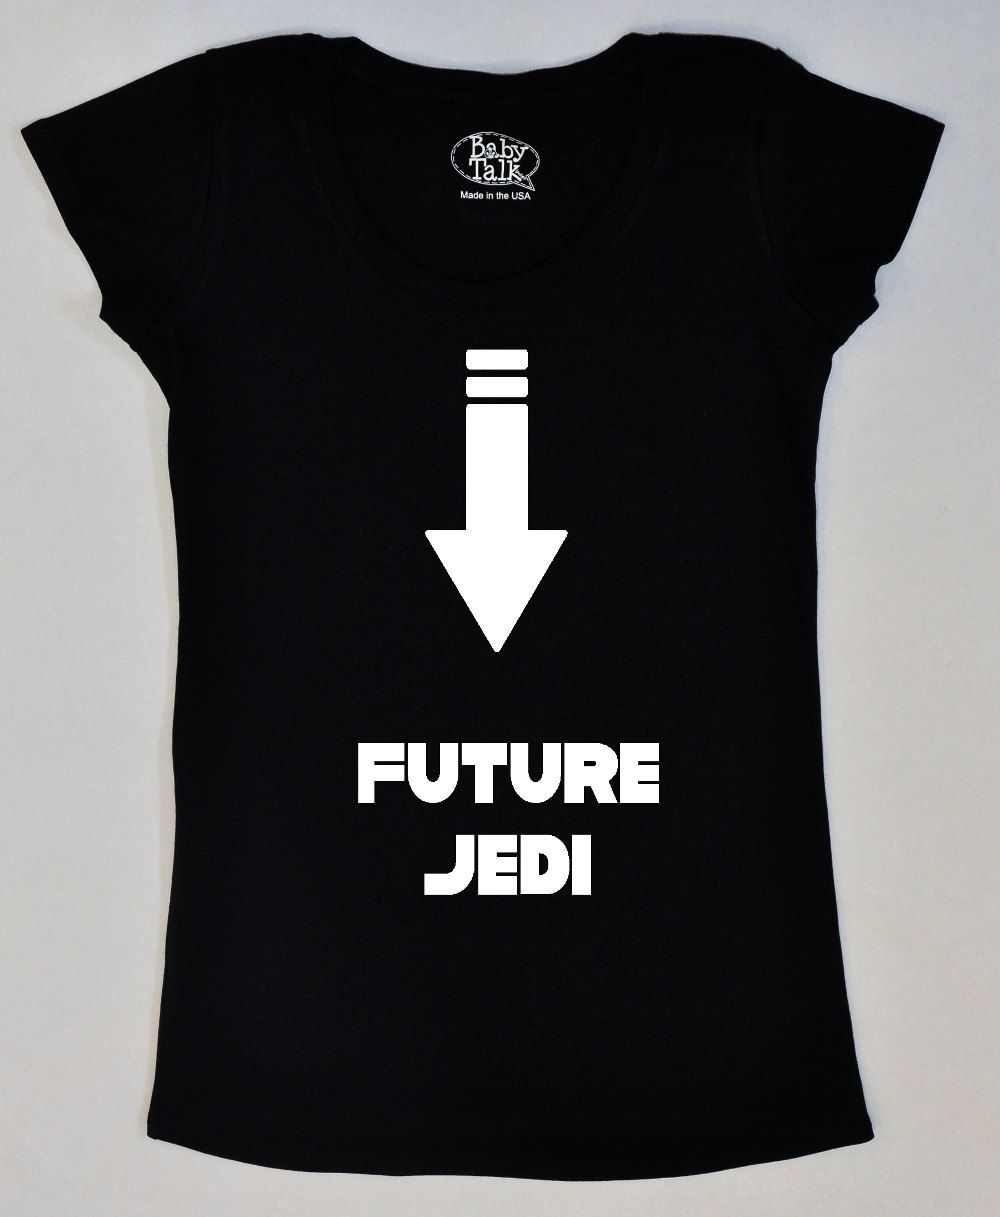 7e6167f2edf Star Wars maternity shirt future Jedi. via Etsy.